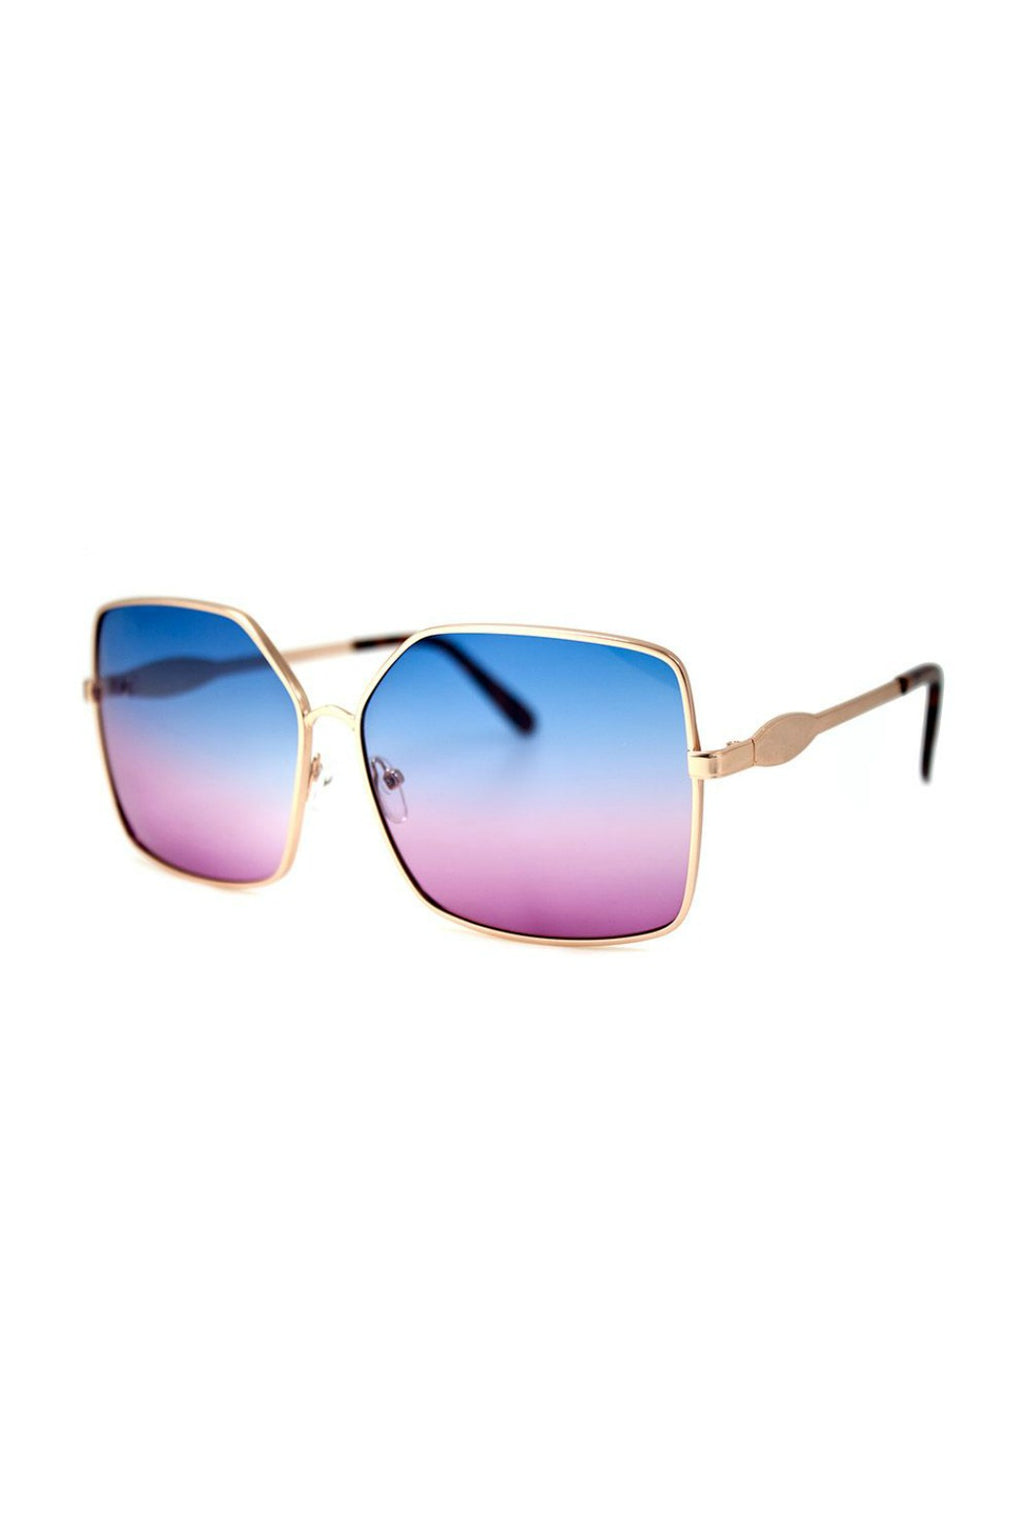 Mass Sunnies - Gold/Blue/Pink